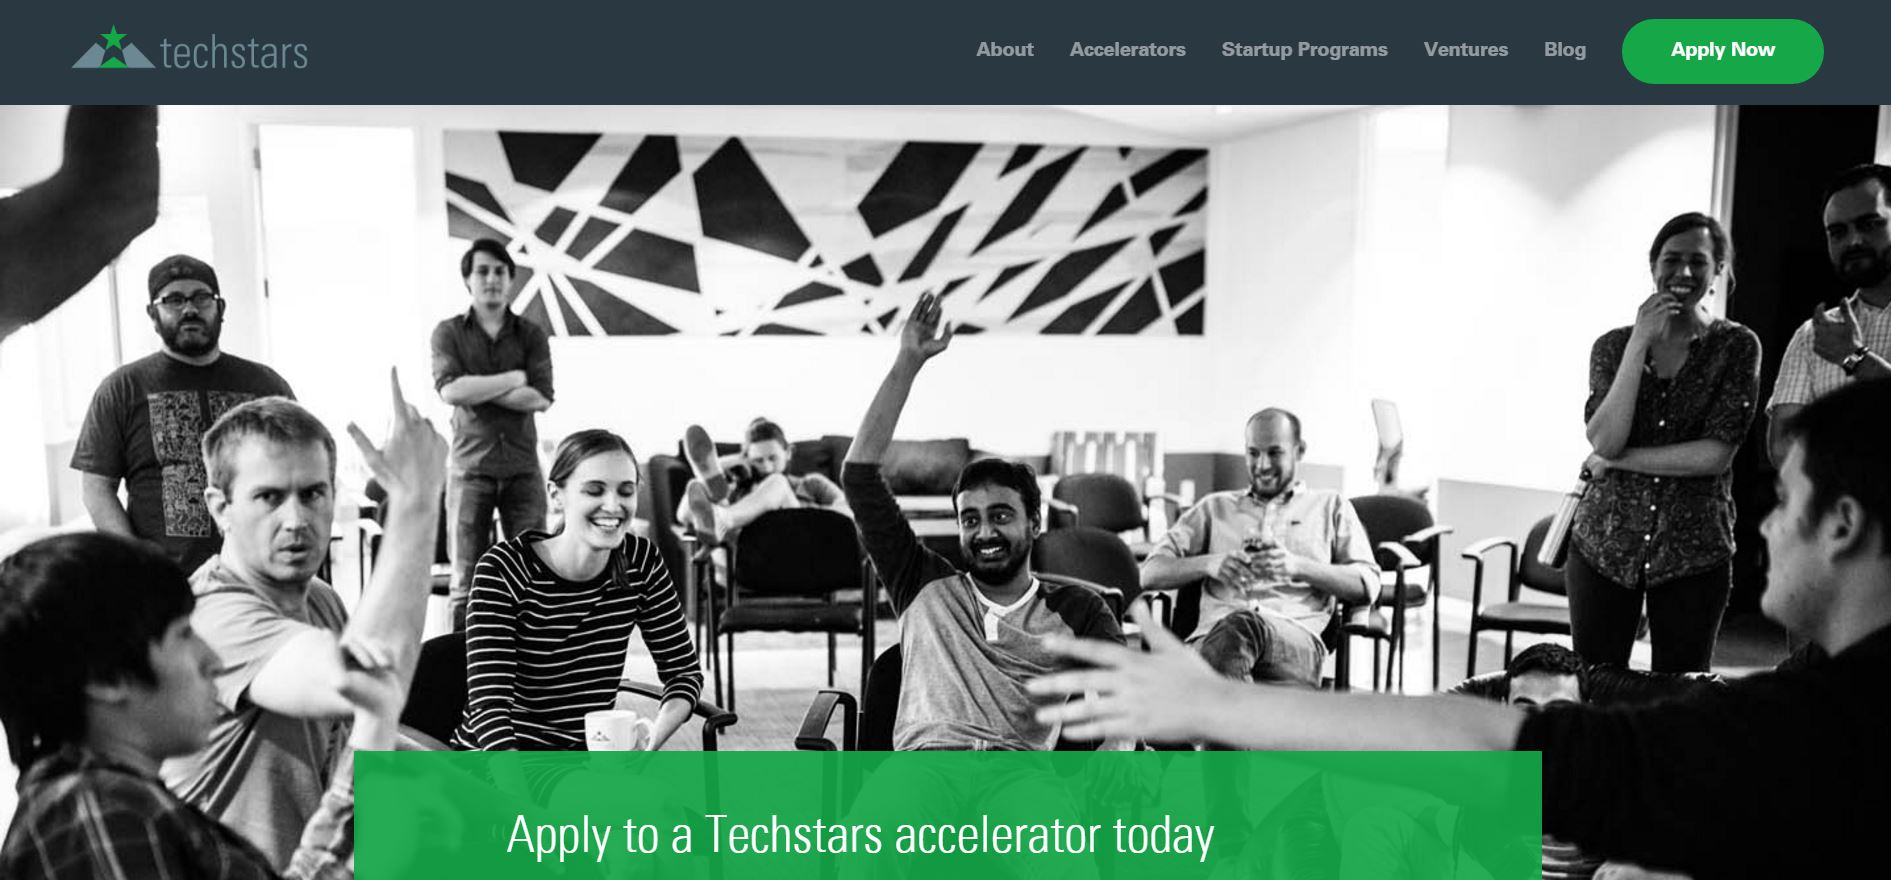 ▲ Techstars Website (출처: Techsatars website)